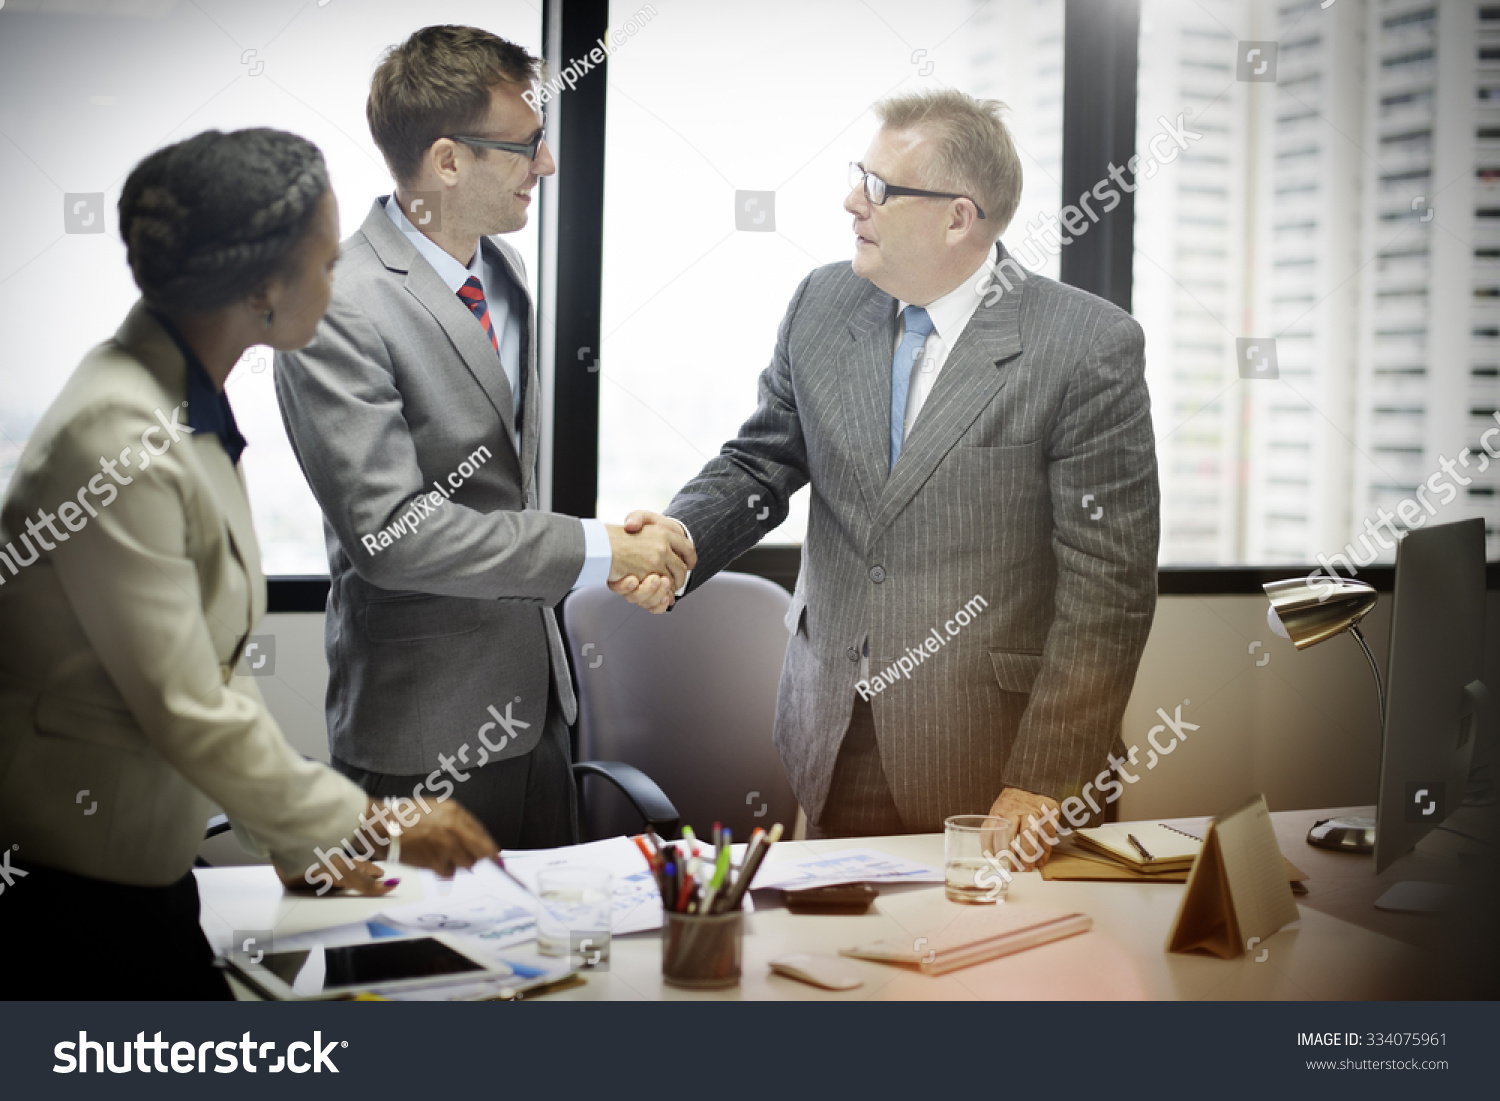 Business people handshake greeting deal at work photo free download - Business People Handshake Greeting Deal Concept